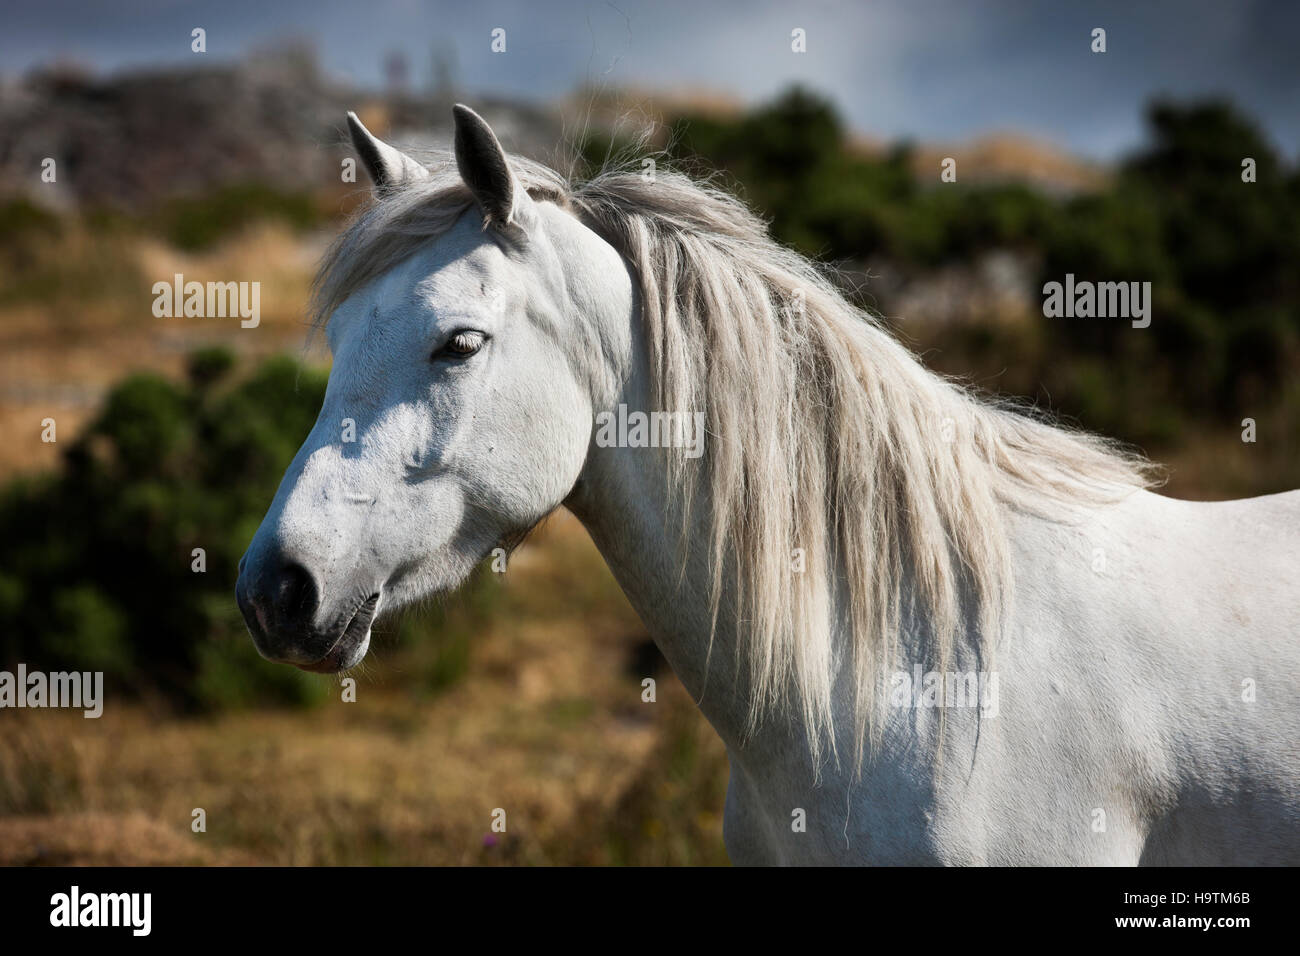 Connemara pony stallion, Connemara, Galway, Ireland - Stock Image